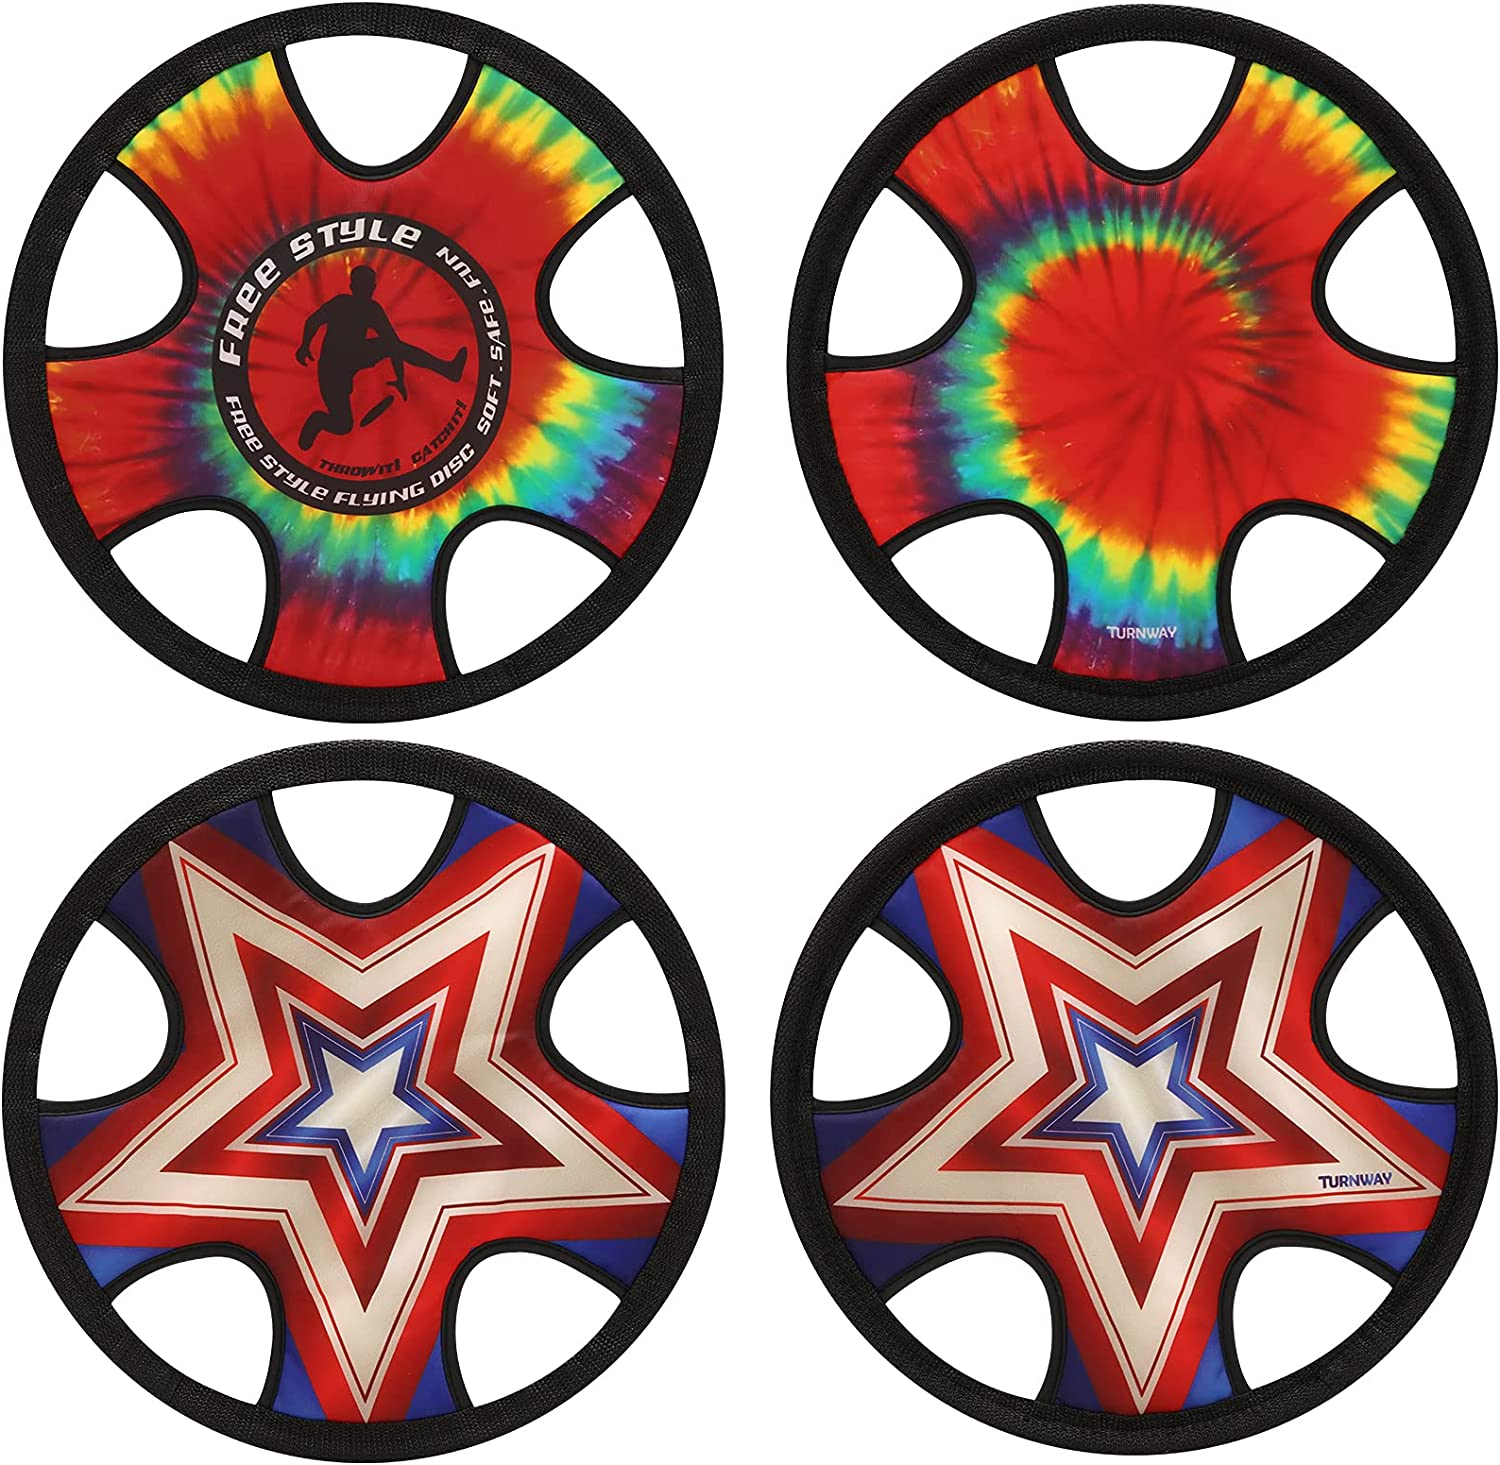 TurnWay Outdoor Soft Super special price Frisbee Max 47% OFF Throwing Fly Disc Toy Flying